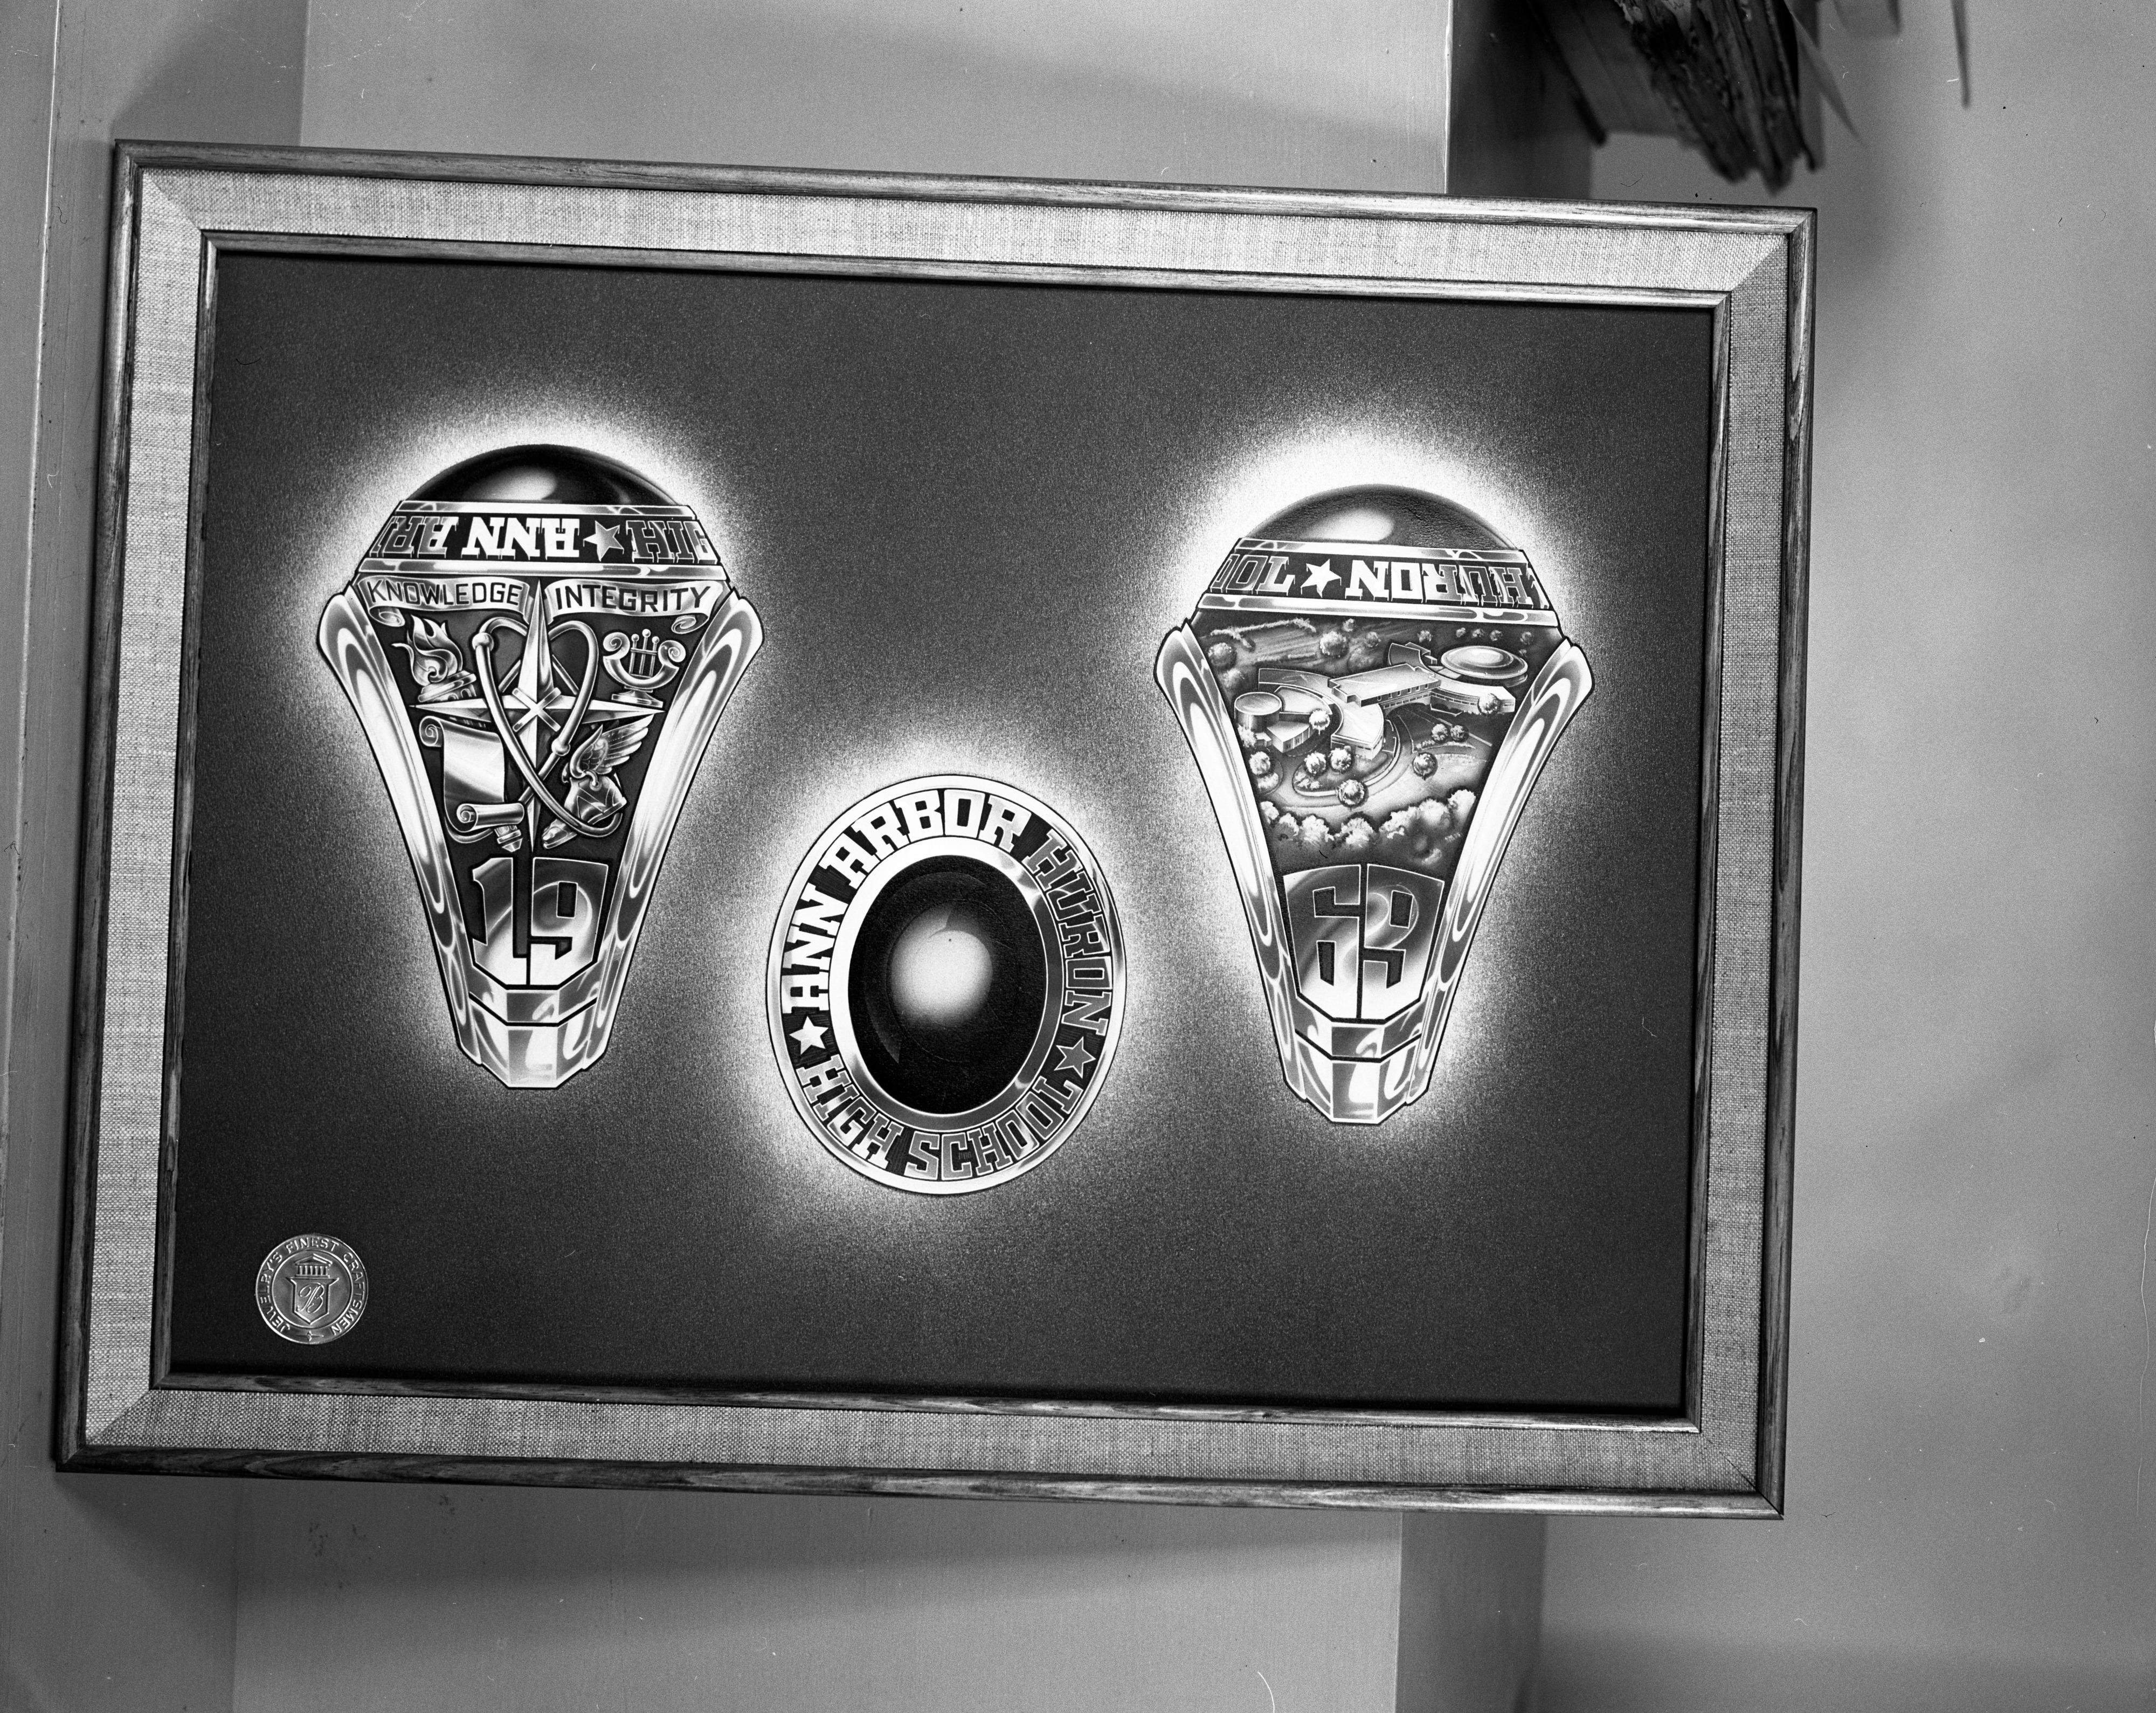 Designs for Ann Arbor Huron High School 1969 class ring, August 1967 image